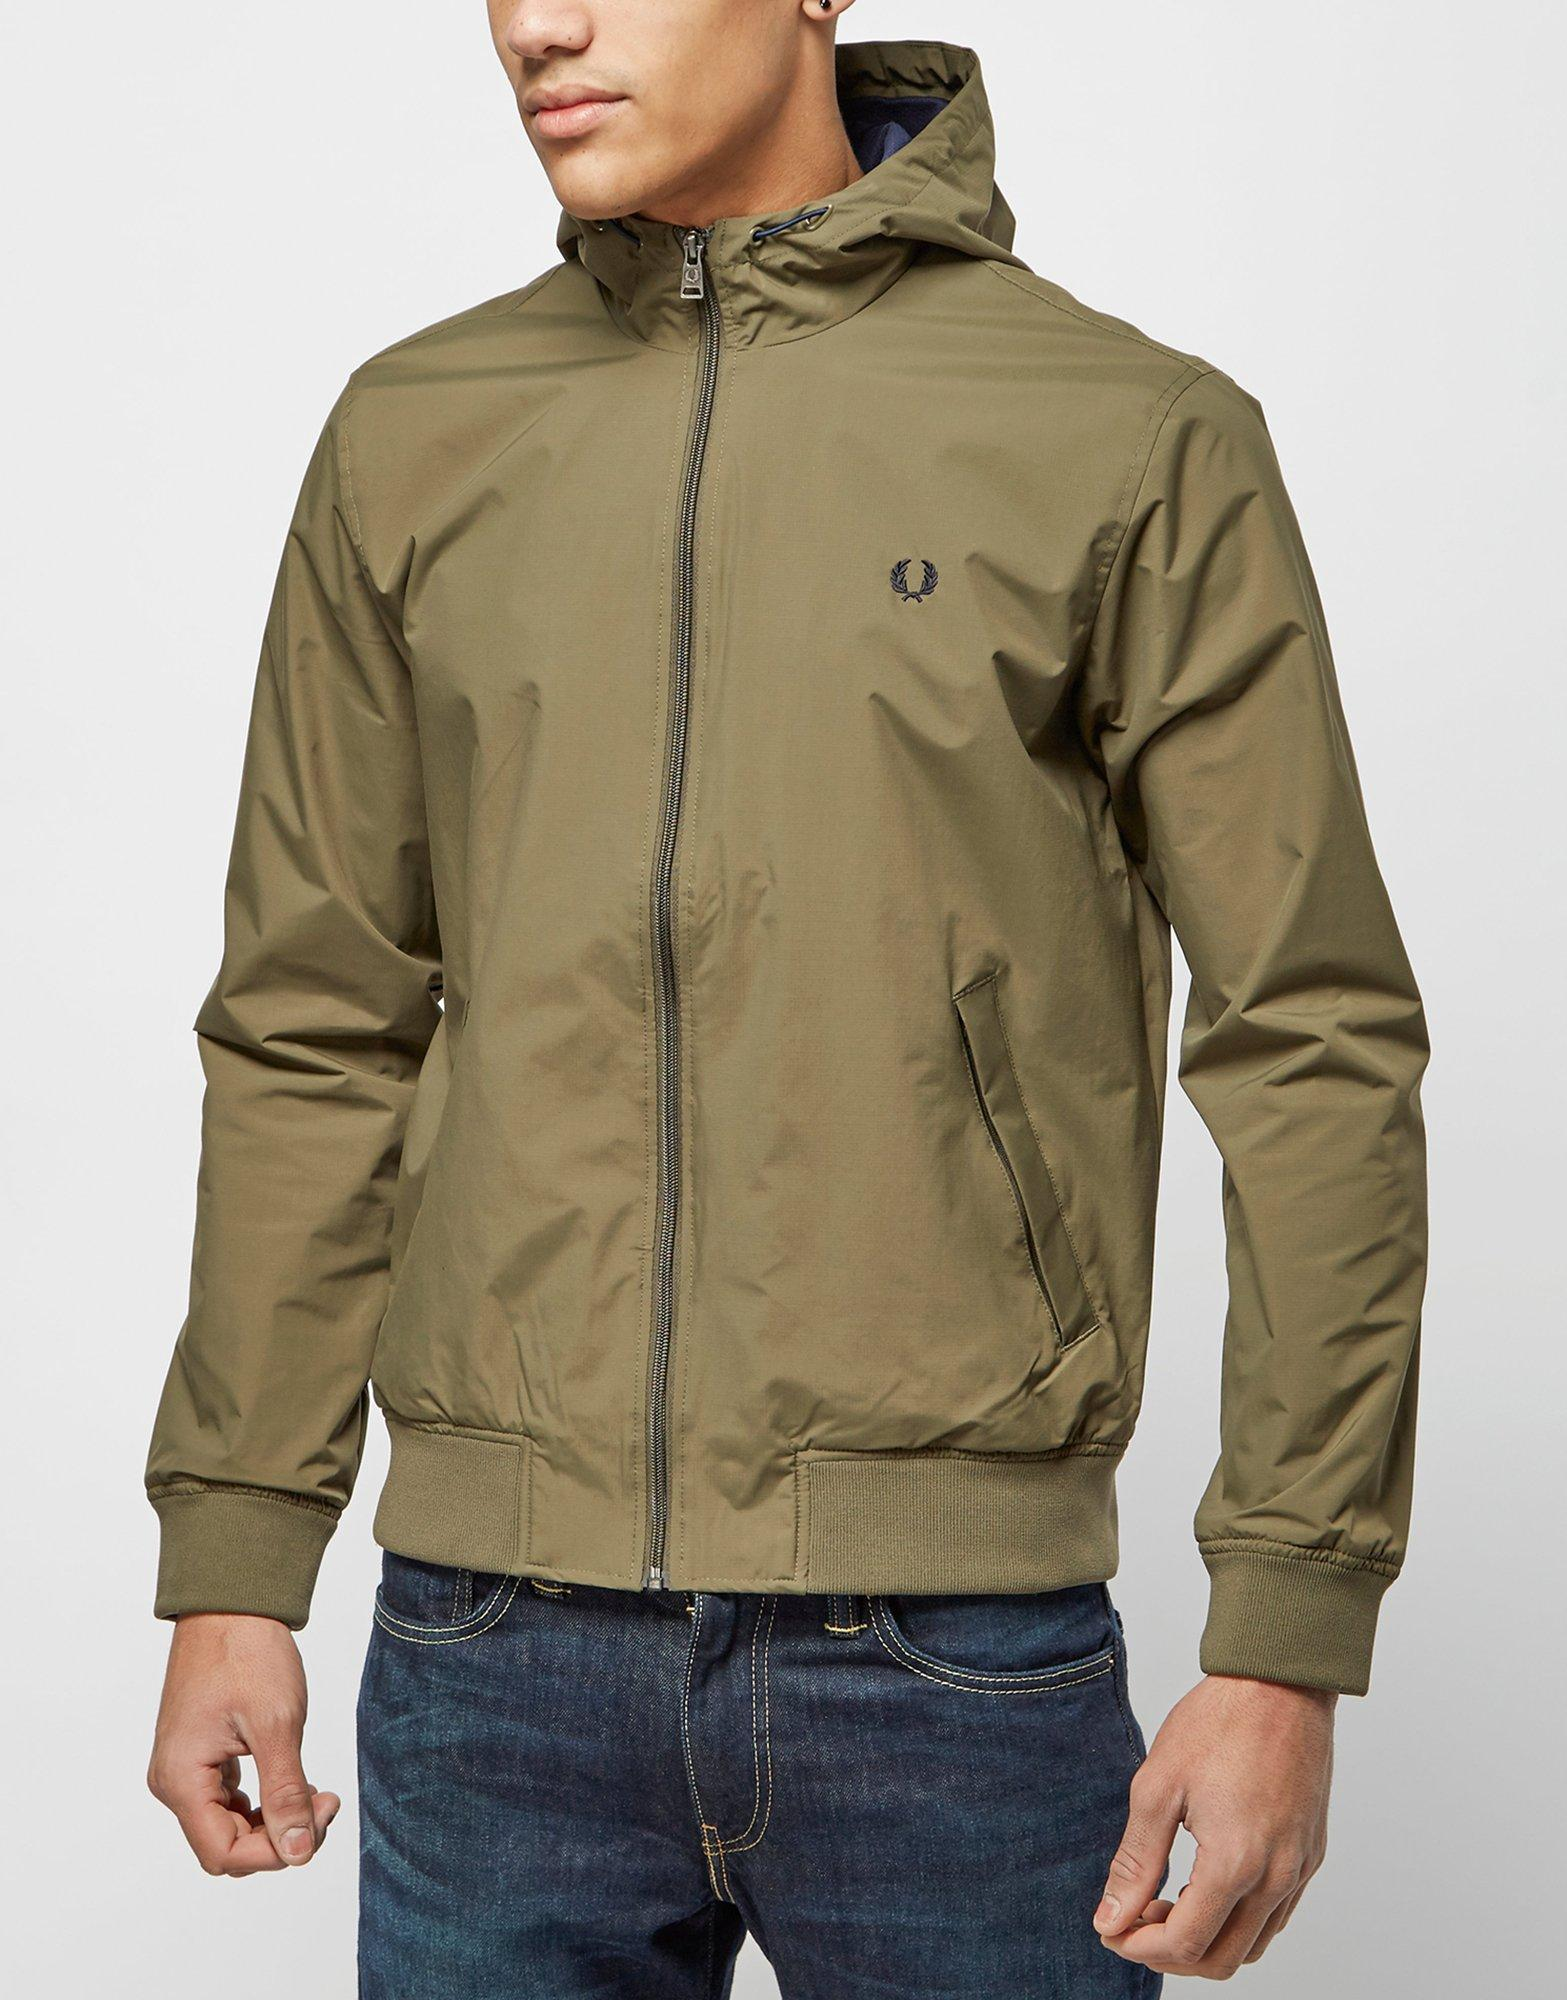 Fred perry green padded parka jacket